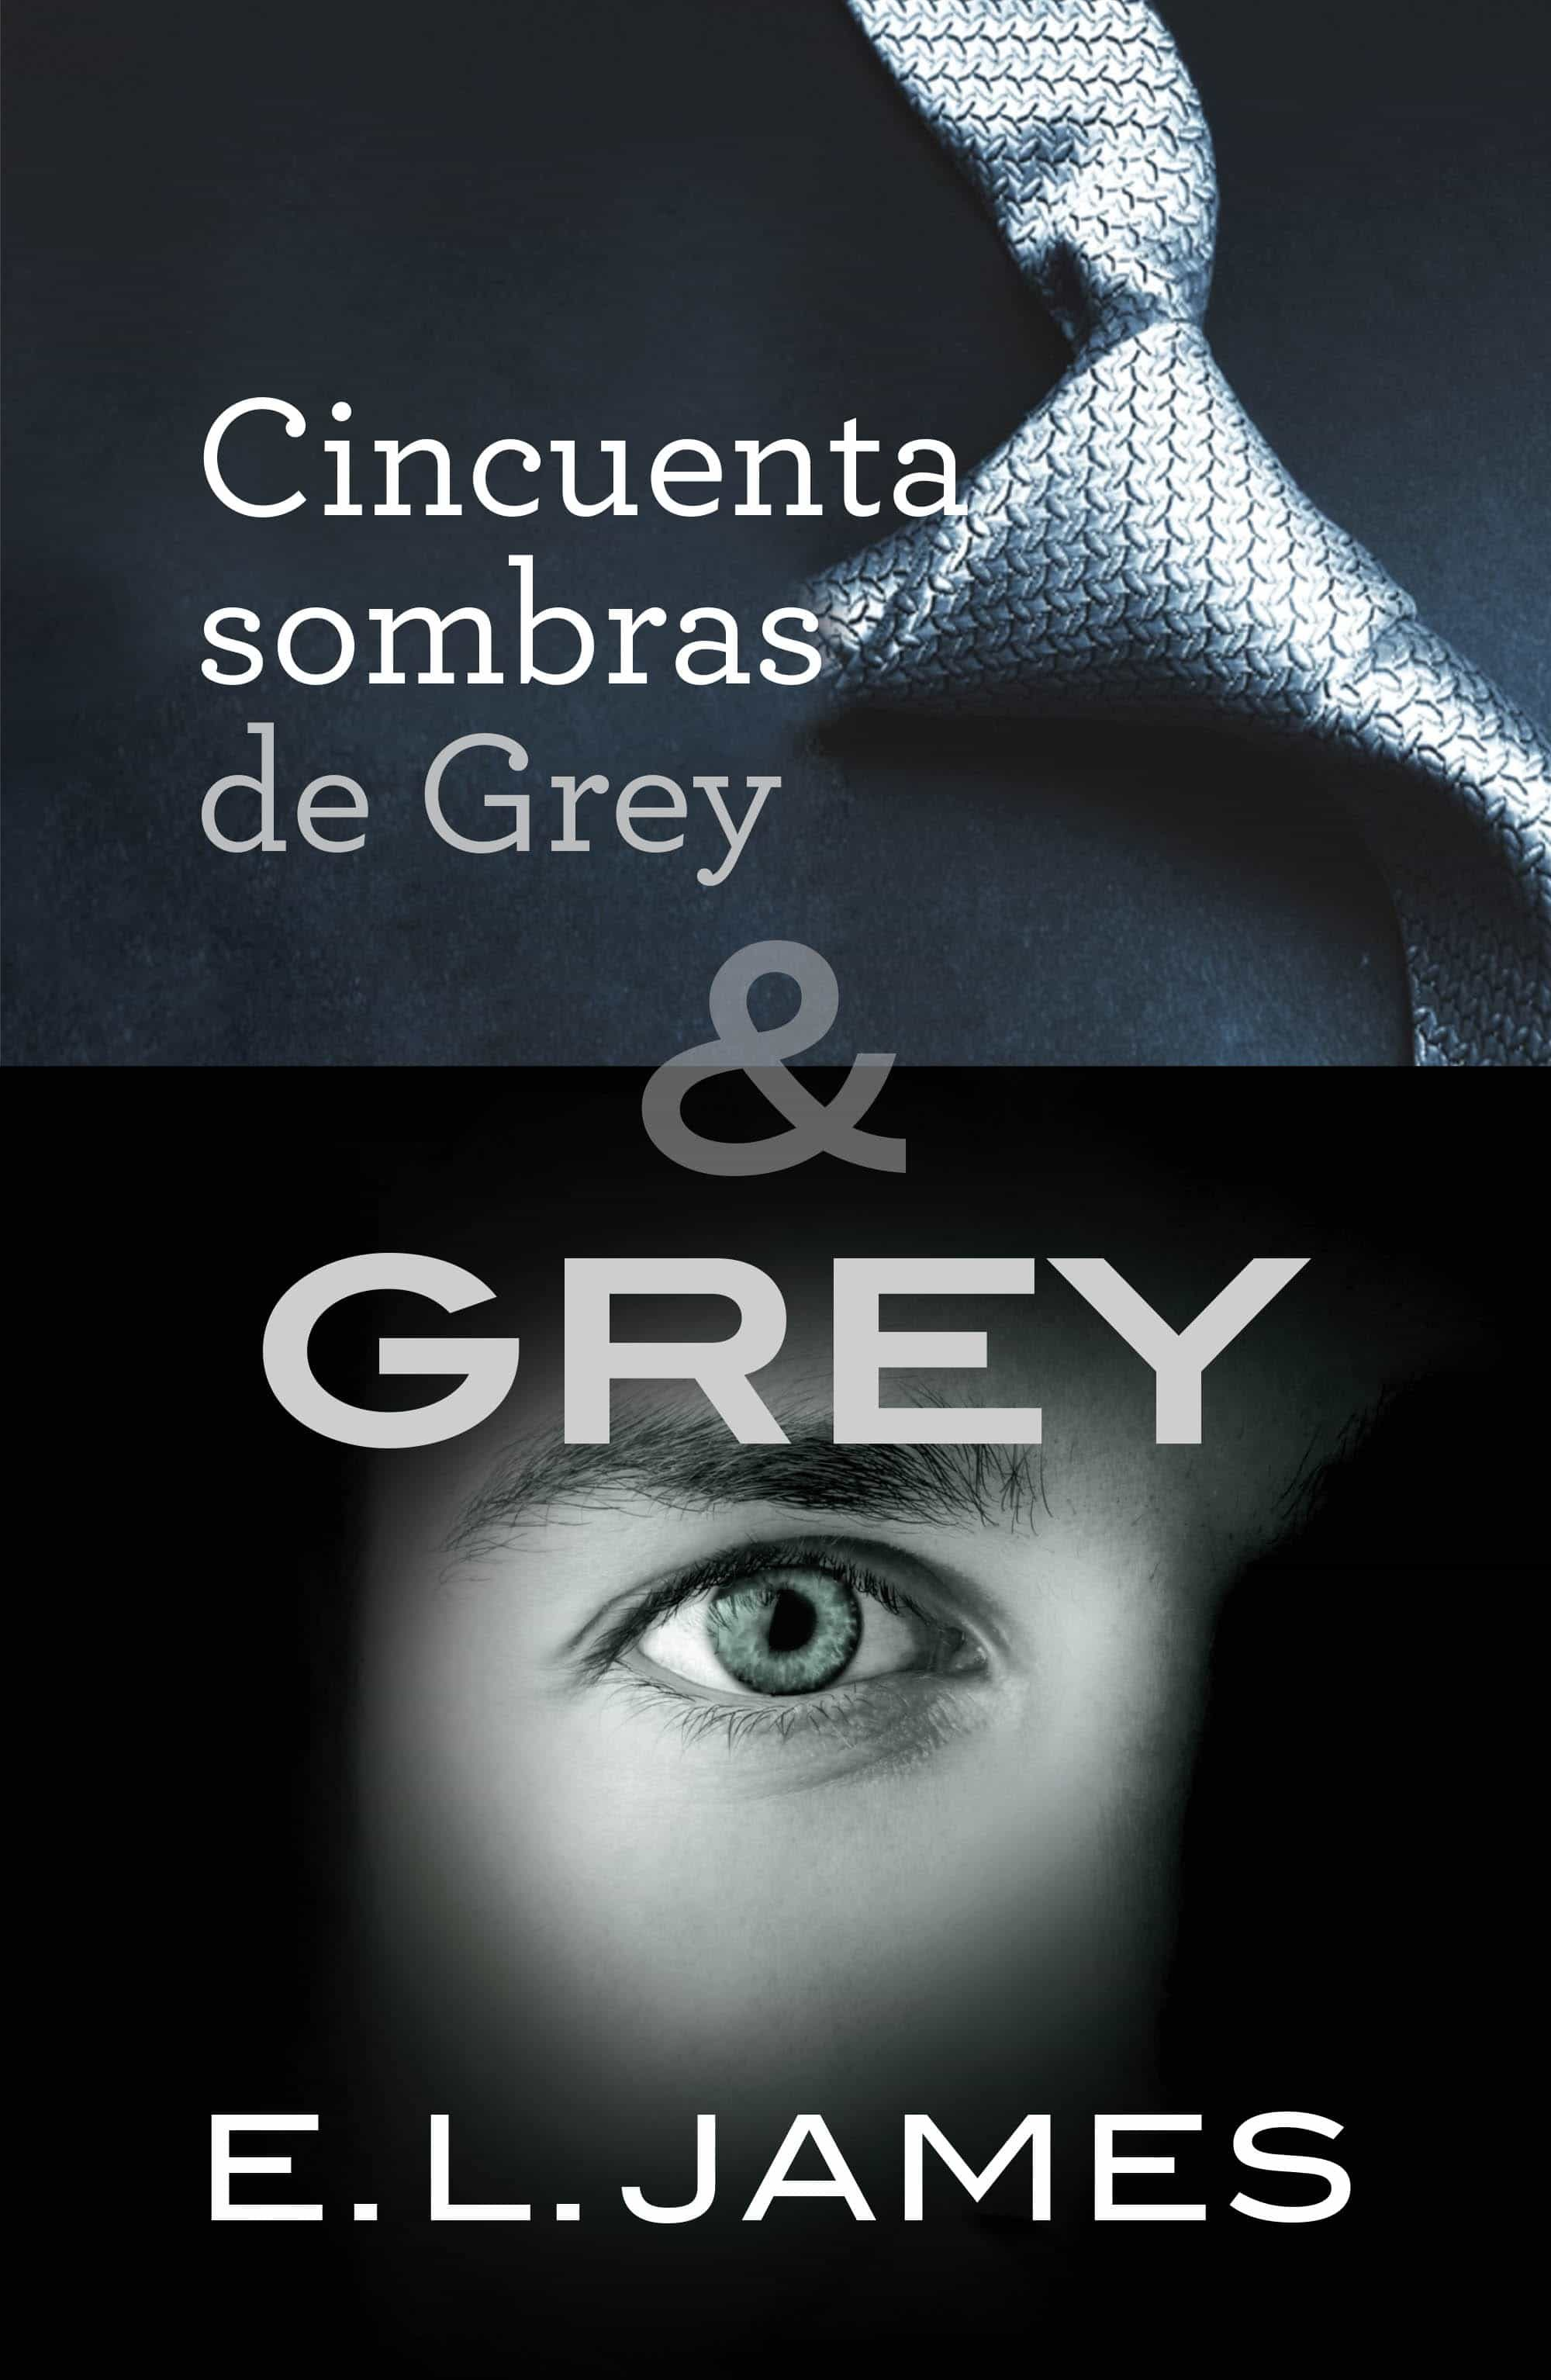 Grey Libro Pdf Pack Cincuenta Sombras De Grey Grey Ebook E L James Descargar Libro Pdf O Epub 9788425353741